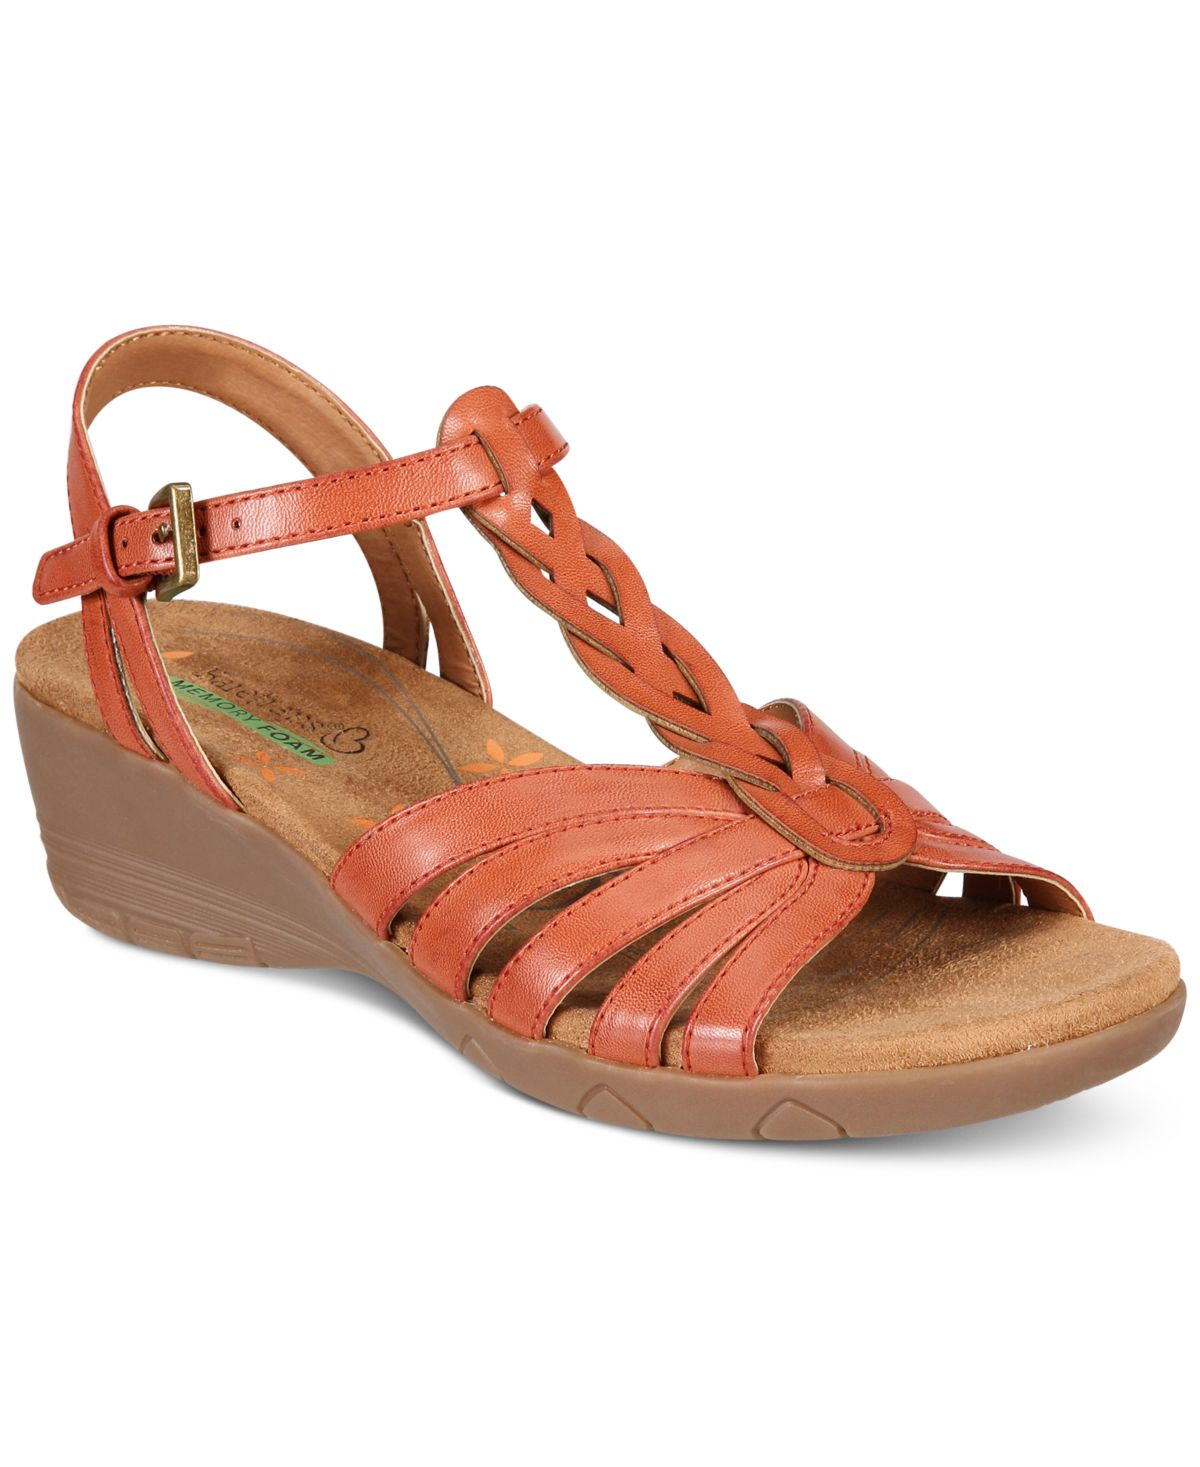 womens bare traps honora memory foam wedge sandals, red rose